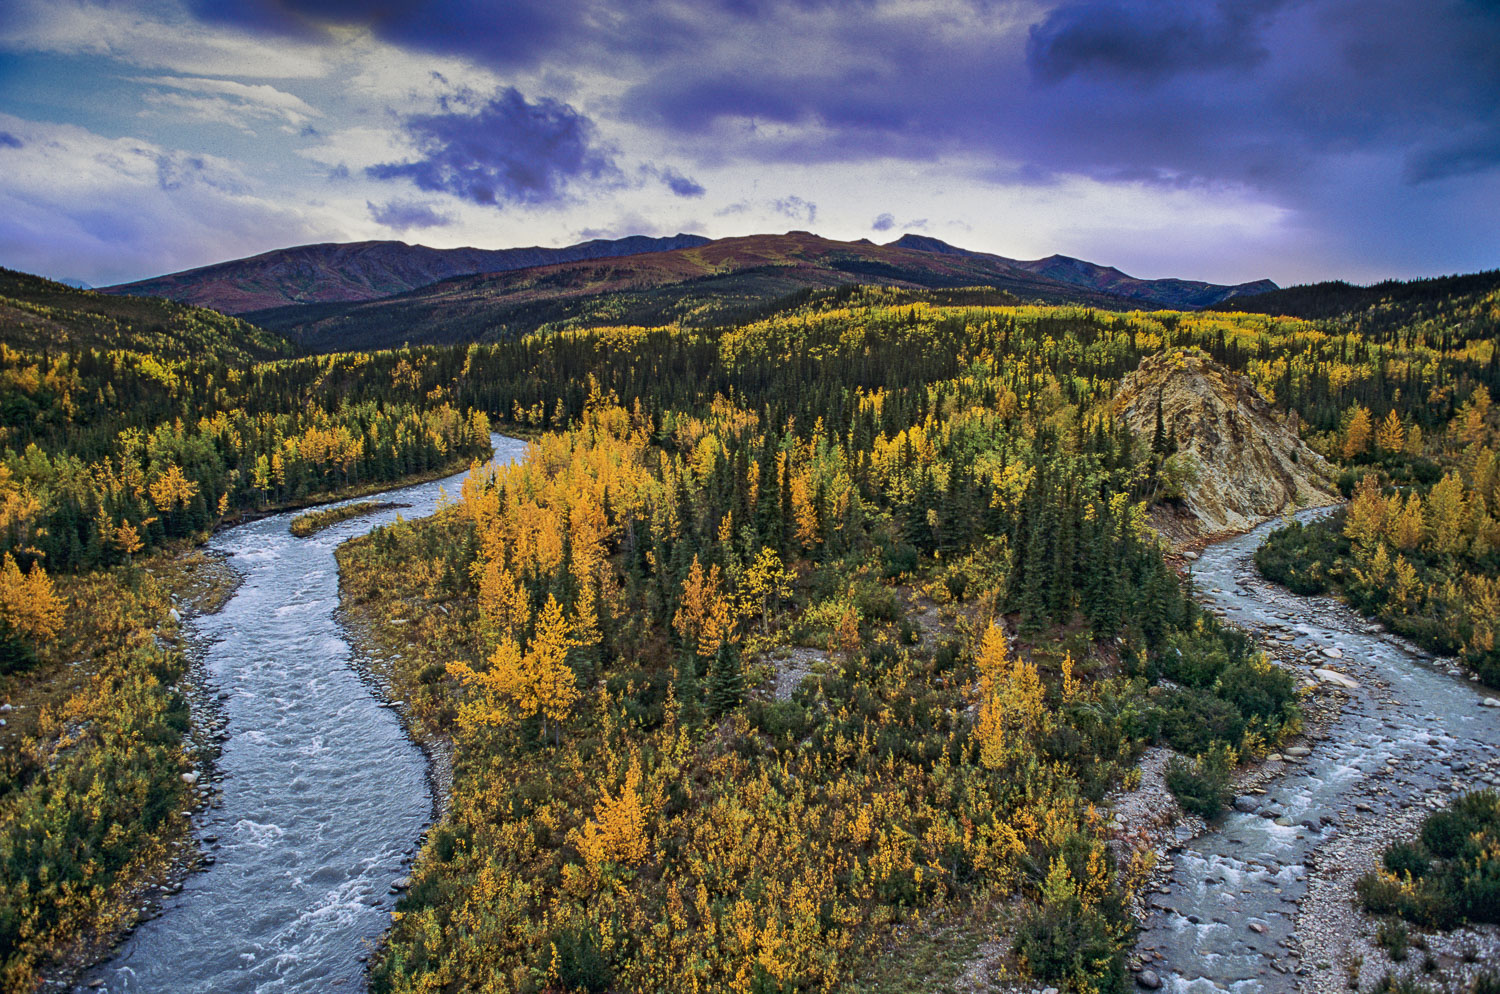 'Fall Curve on Riley Creek', Denali National Park, Alaska